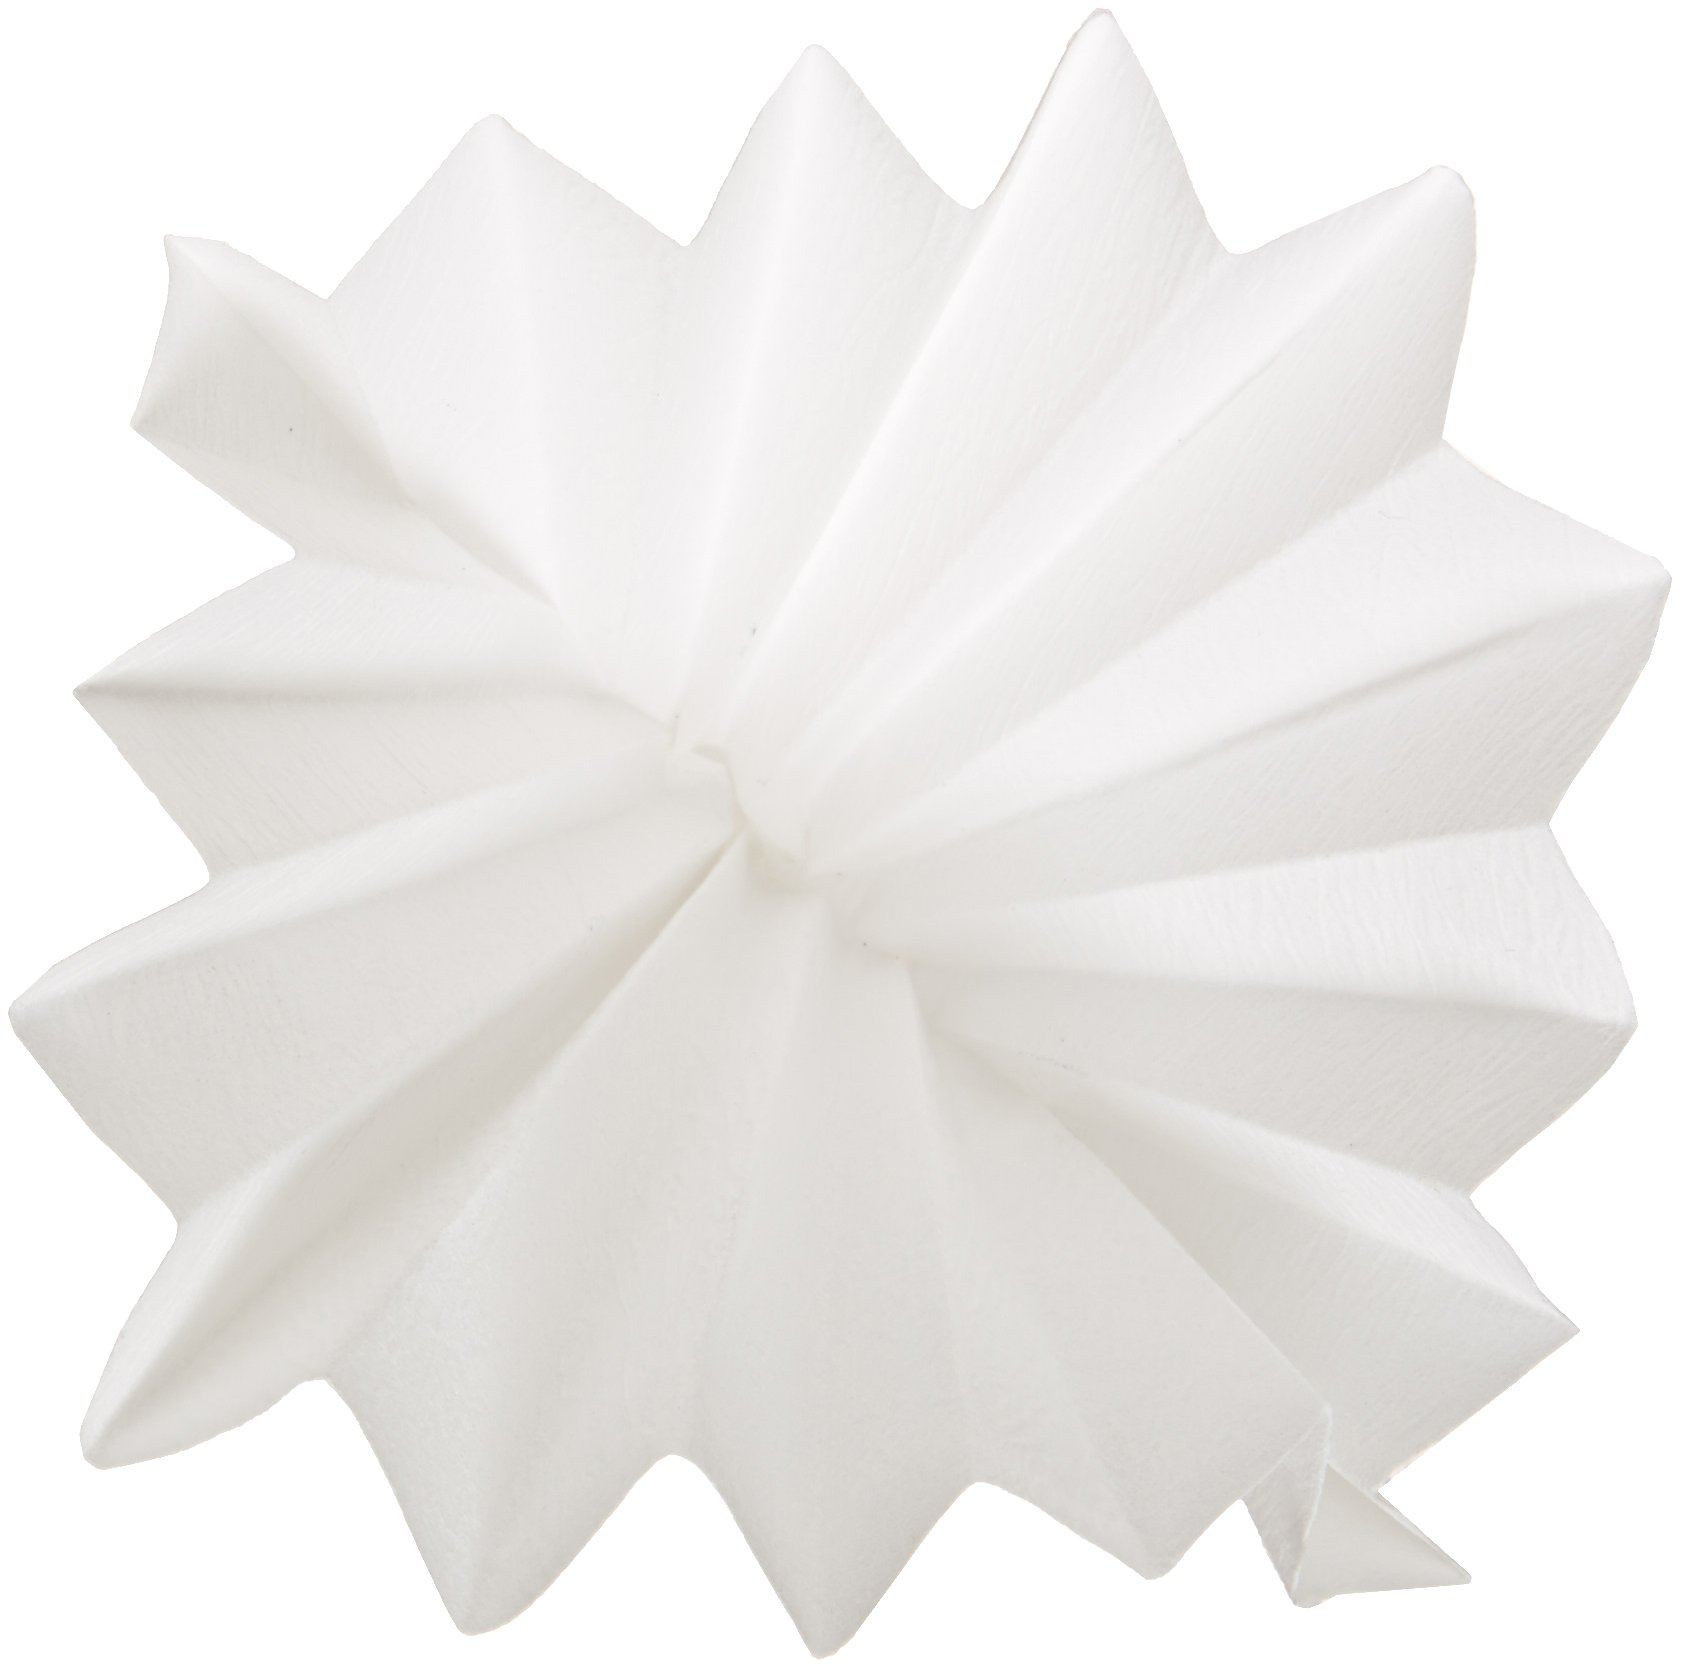 GE Whatman Reeve Angel 5802-150 Qualitative Filter Paper, Circle, Creped Surface, Prepleated, Fast Speed, Grade 802, 15cm Diameter (Pack of 100)